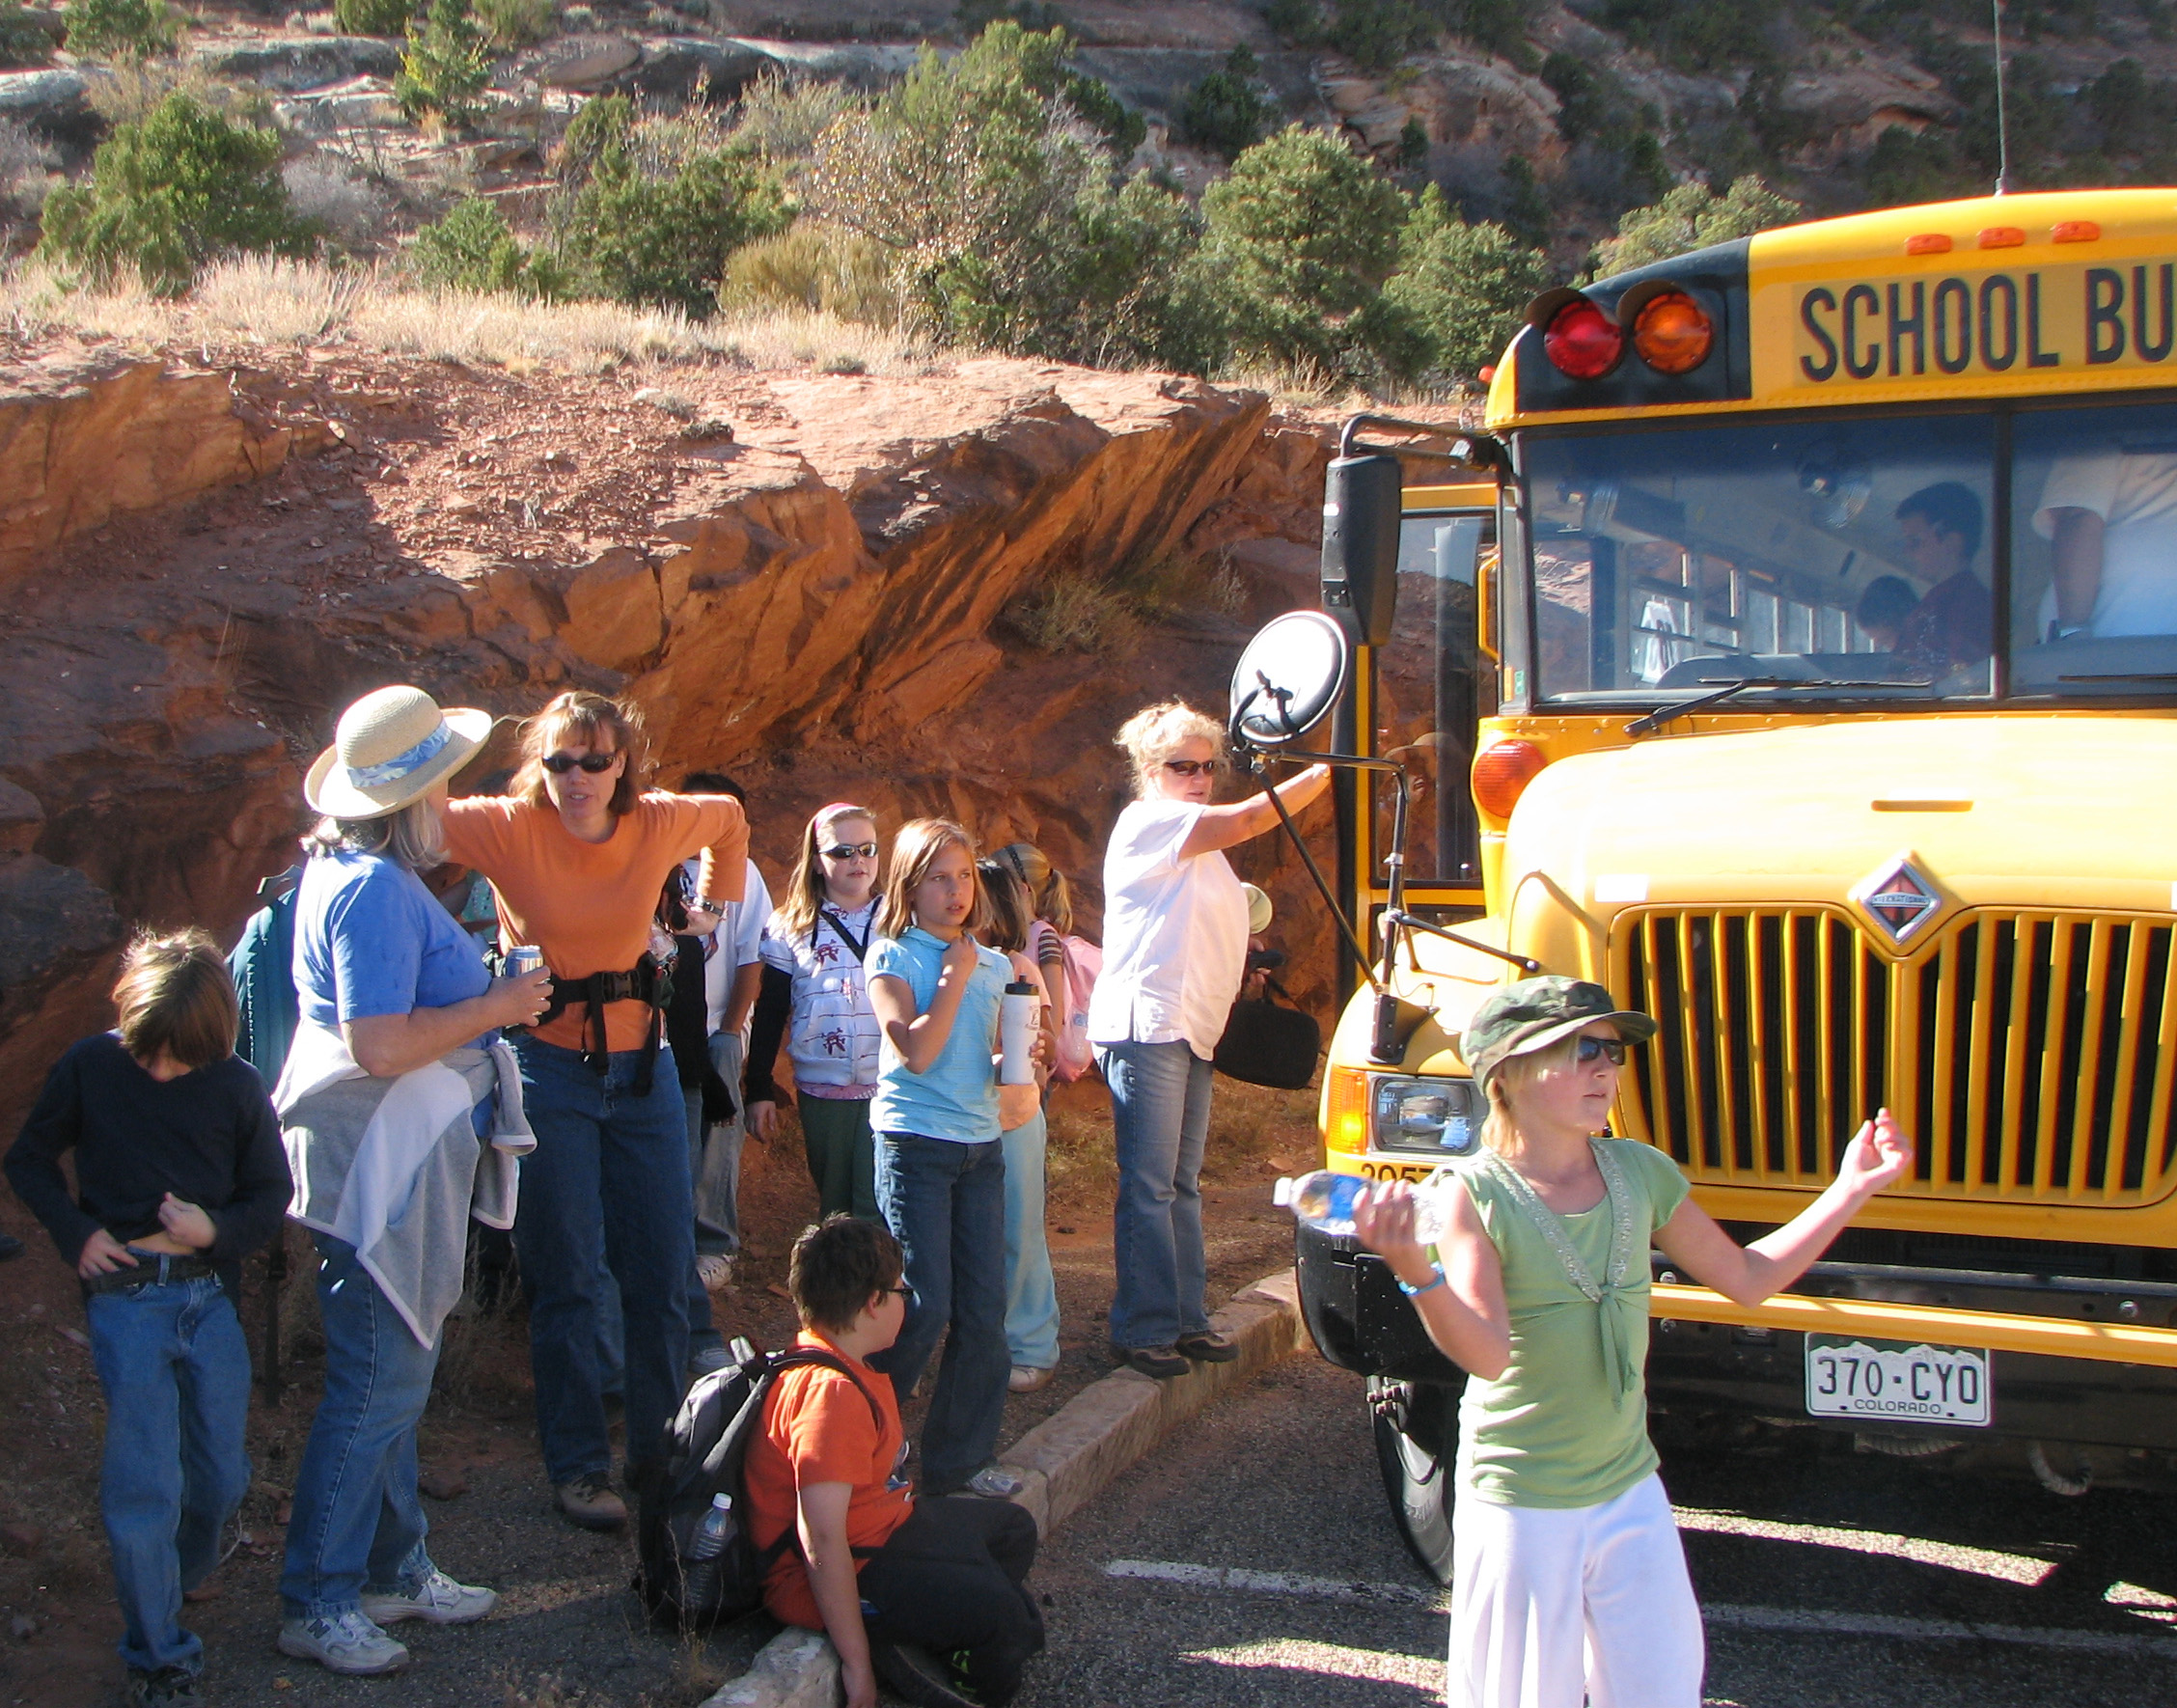 Students on a field trip.